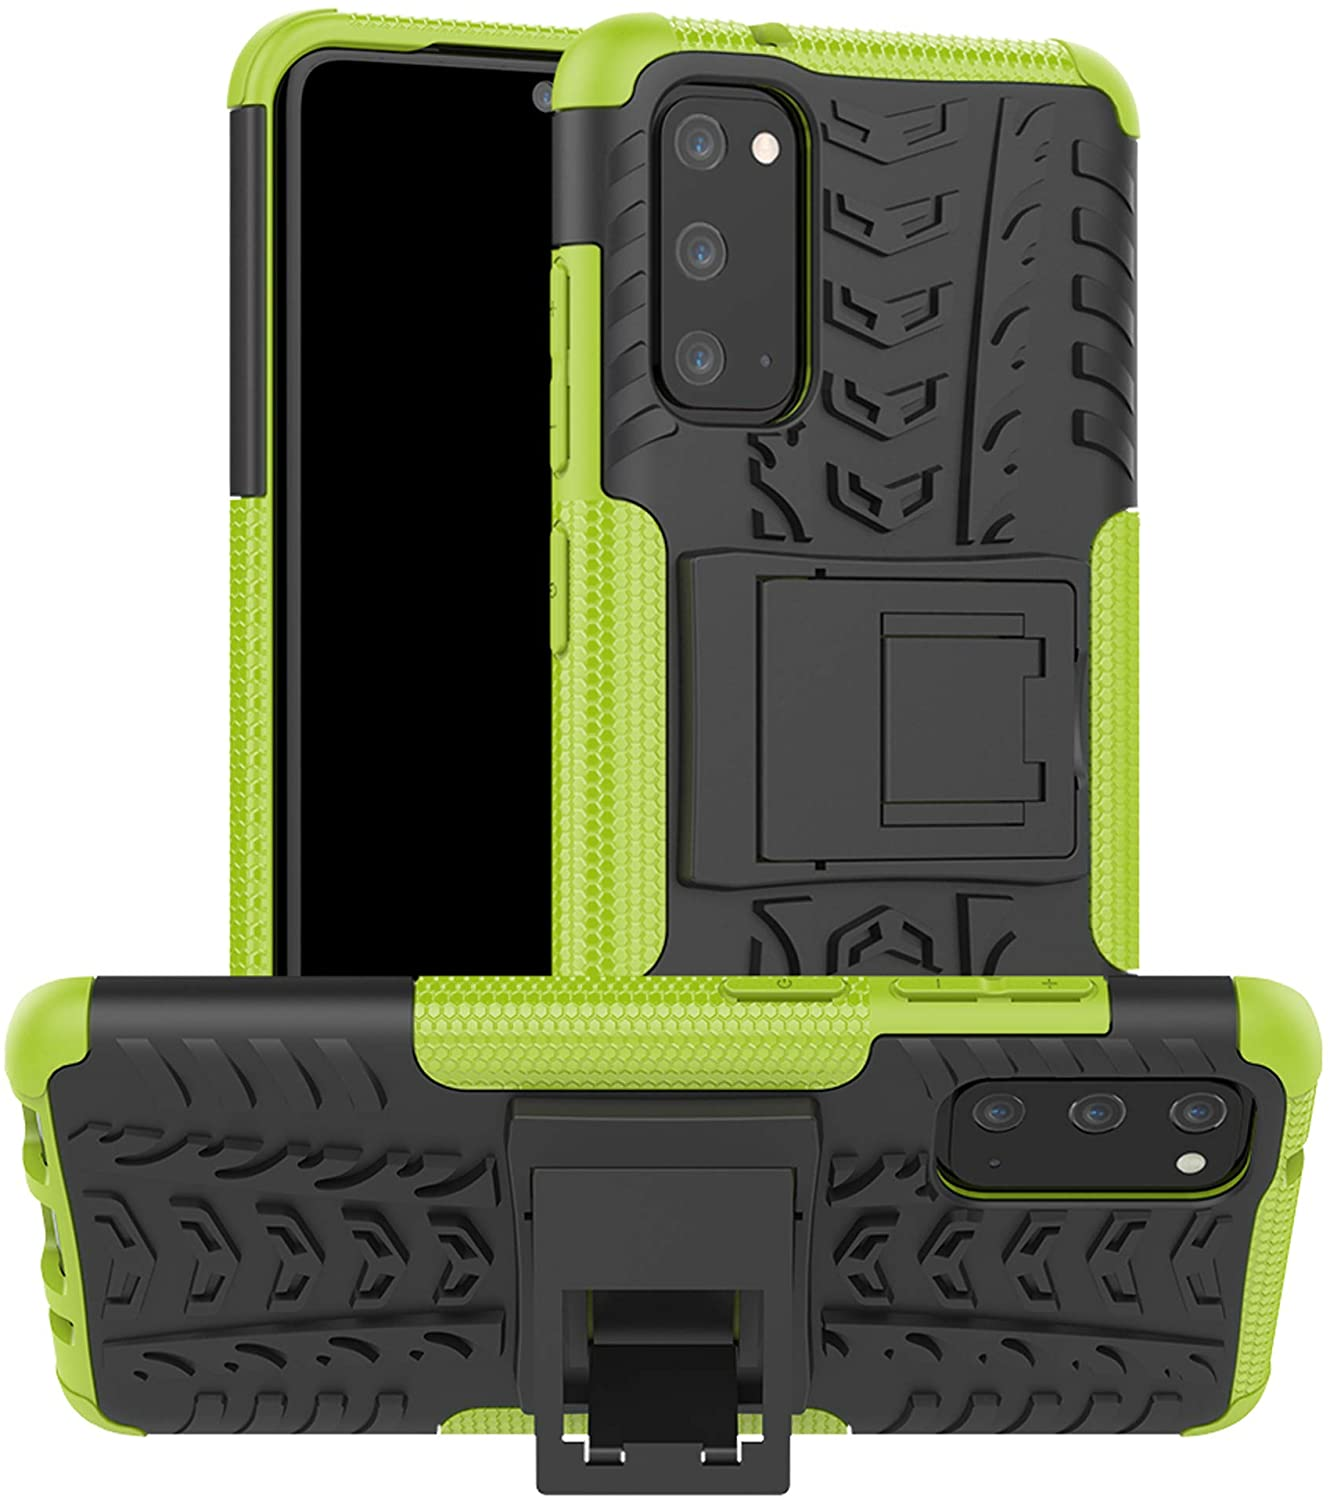 LiuShan Compatible with Galaxy S20 Case,Shockproof Heavy Duty Combo Hybrid Rugged Dual Layer Grip Cover with Kickstand for Samsung Galaxy S20 Smartphone(Not fit Galaxy S20 Ultra /S20 Plus),Green